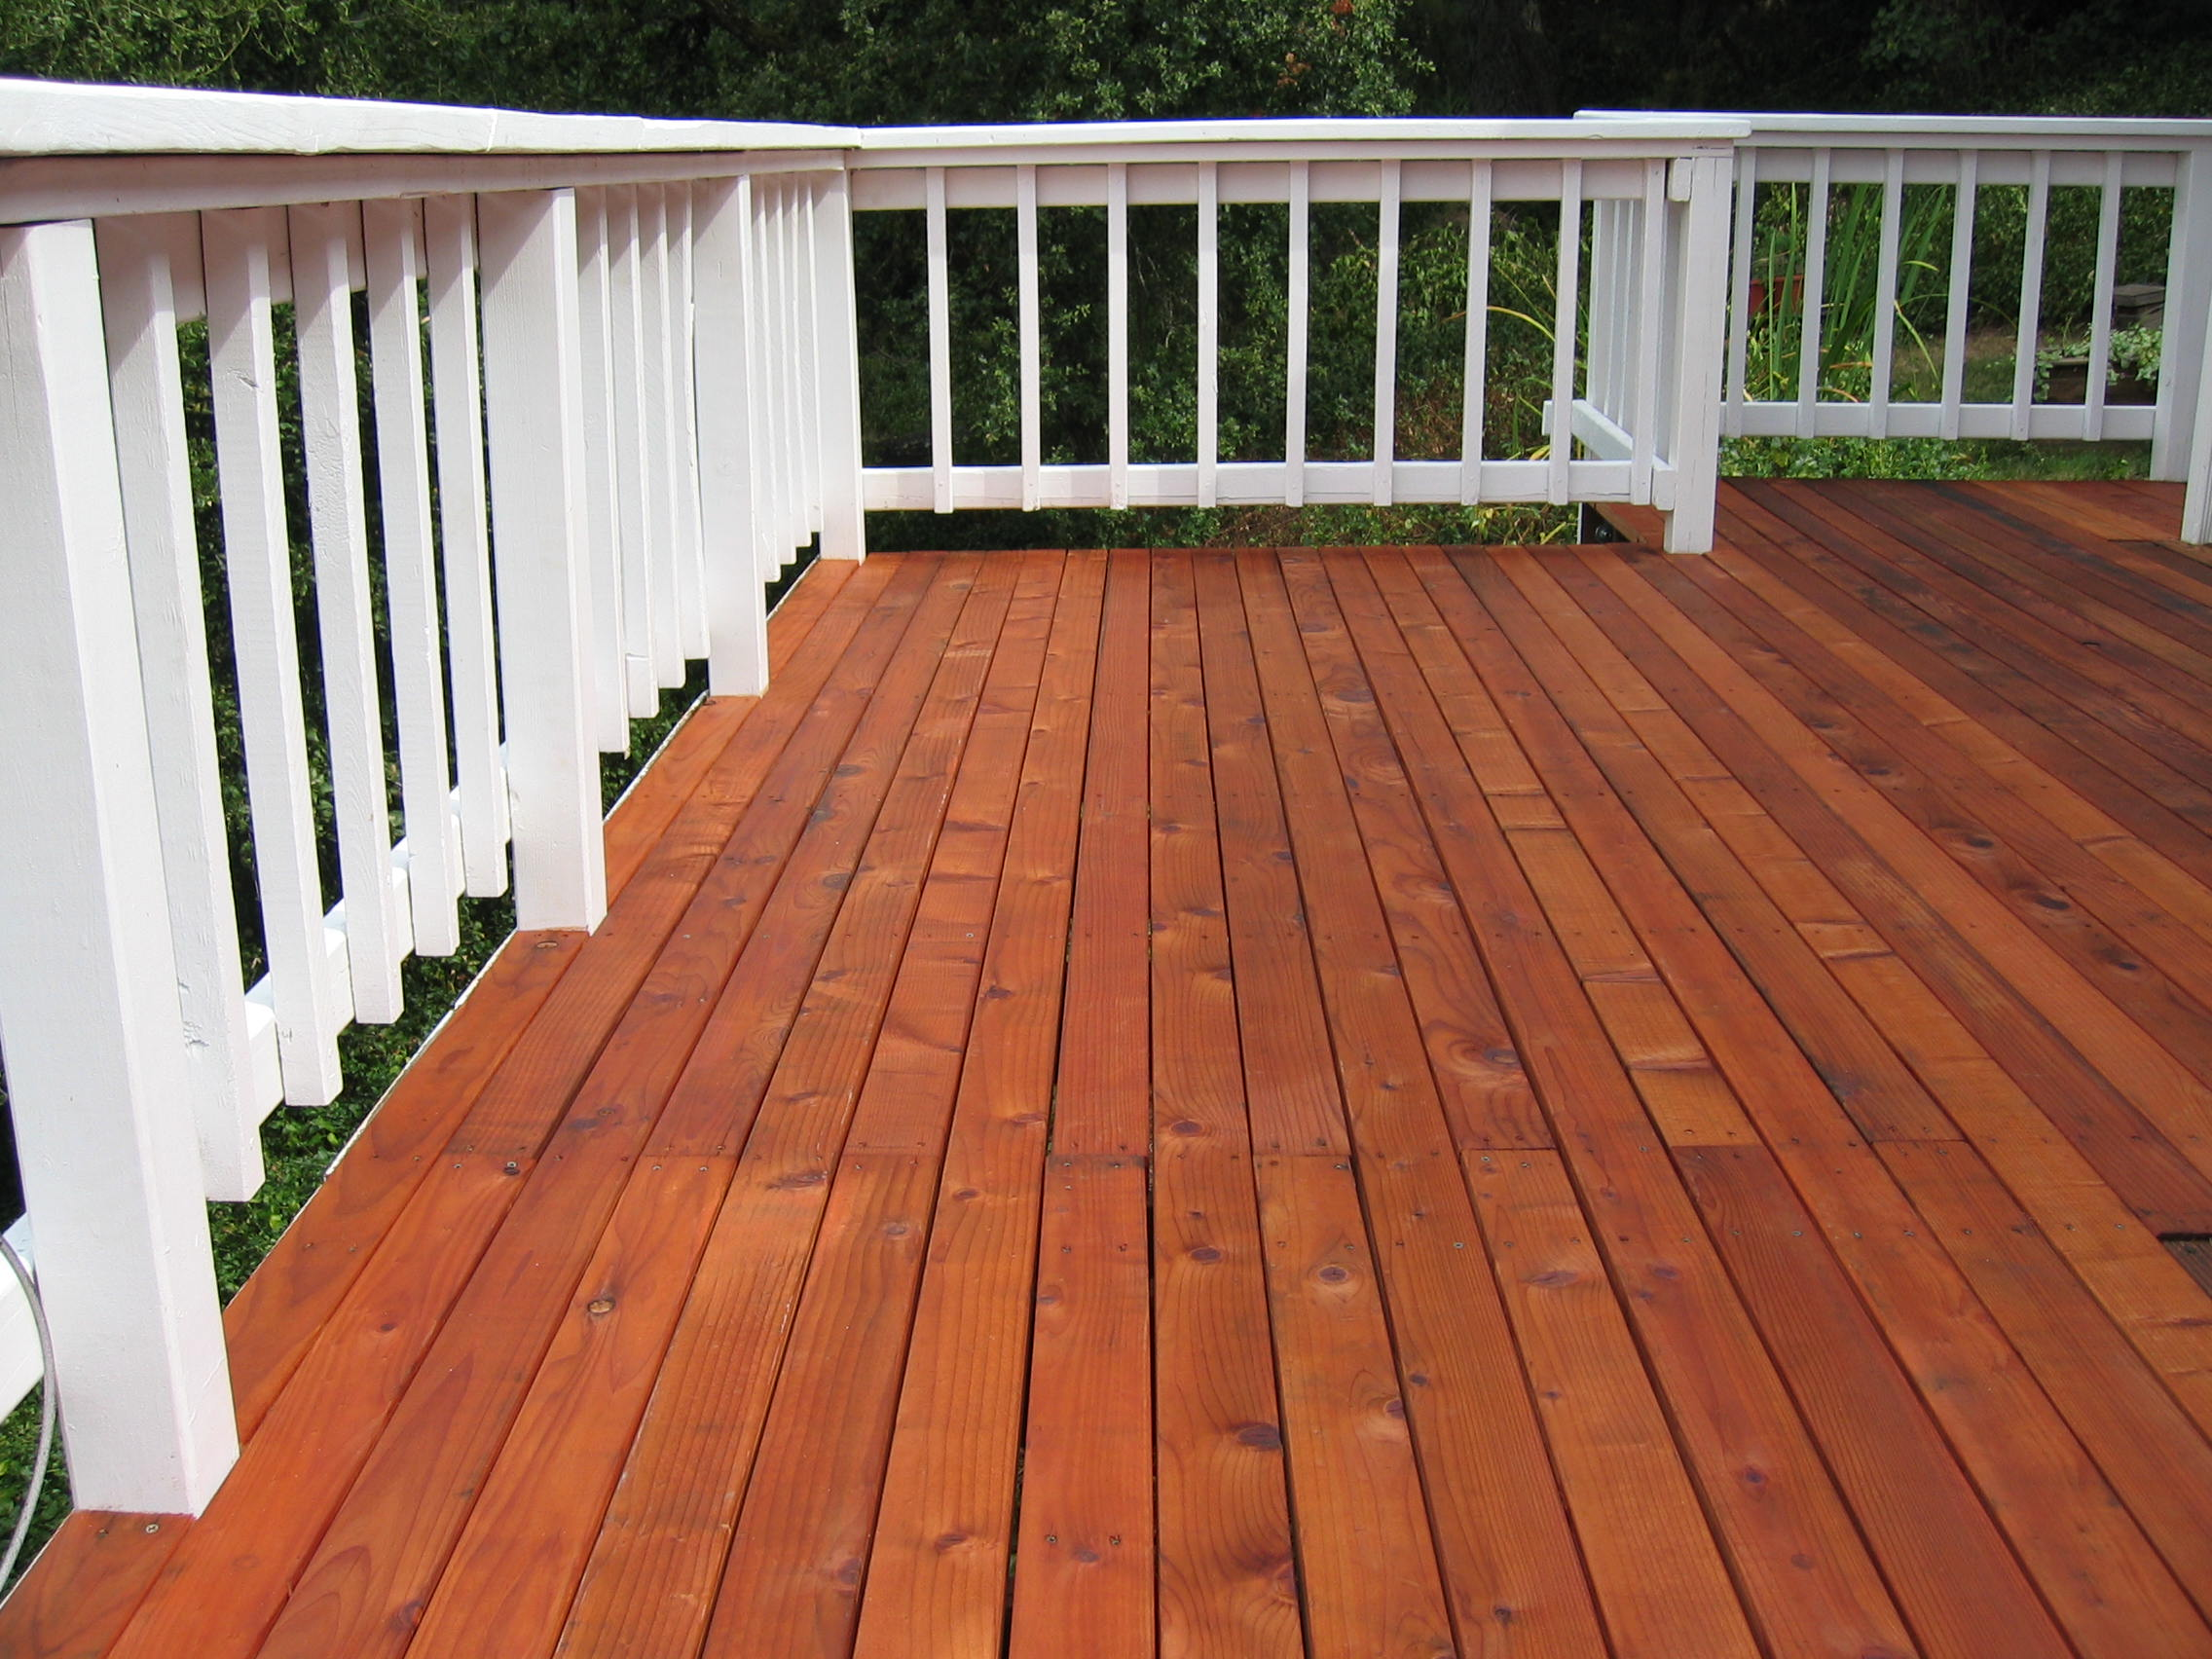 What Is The Best Kind Of Product To Protect My Deck